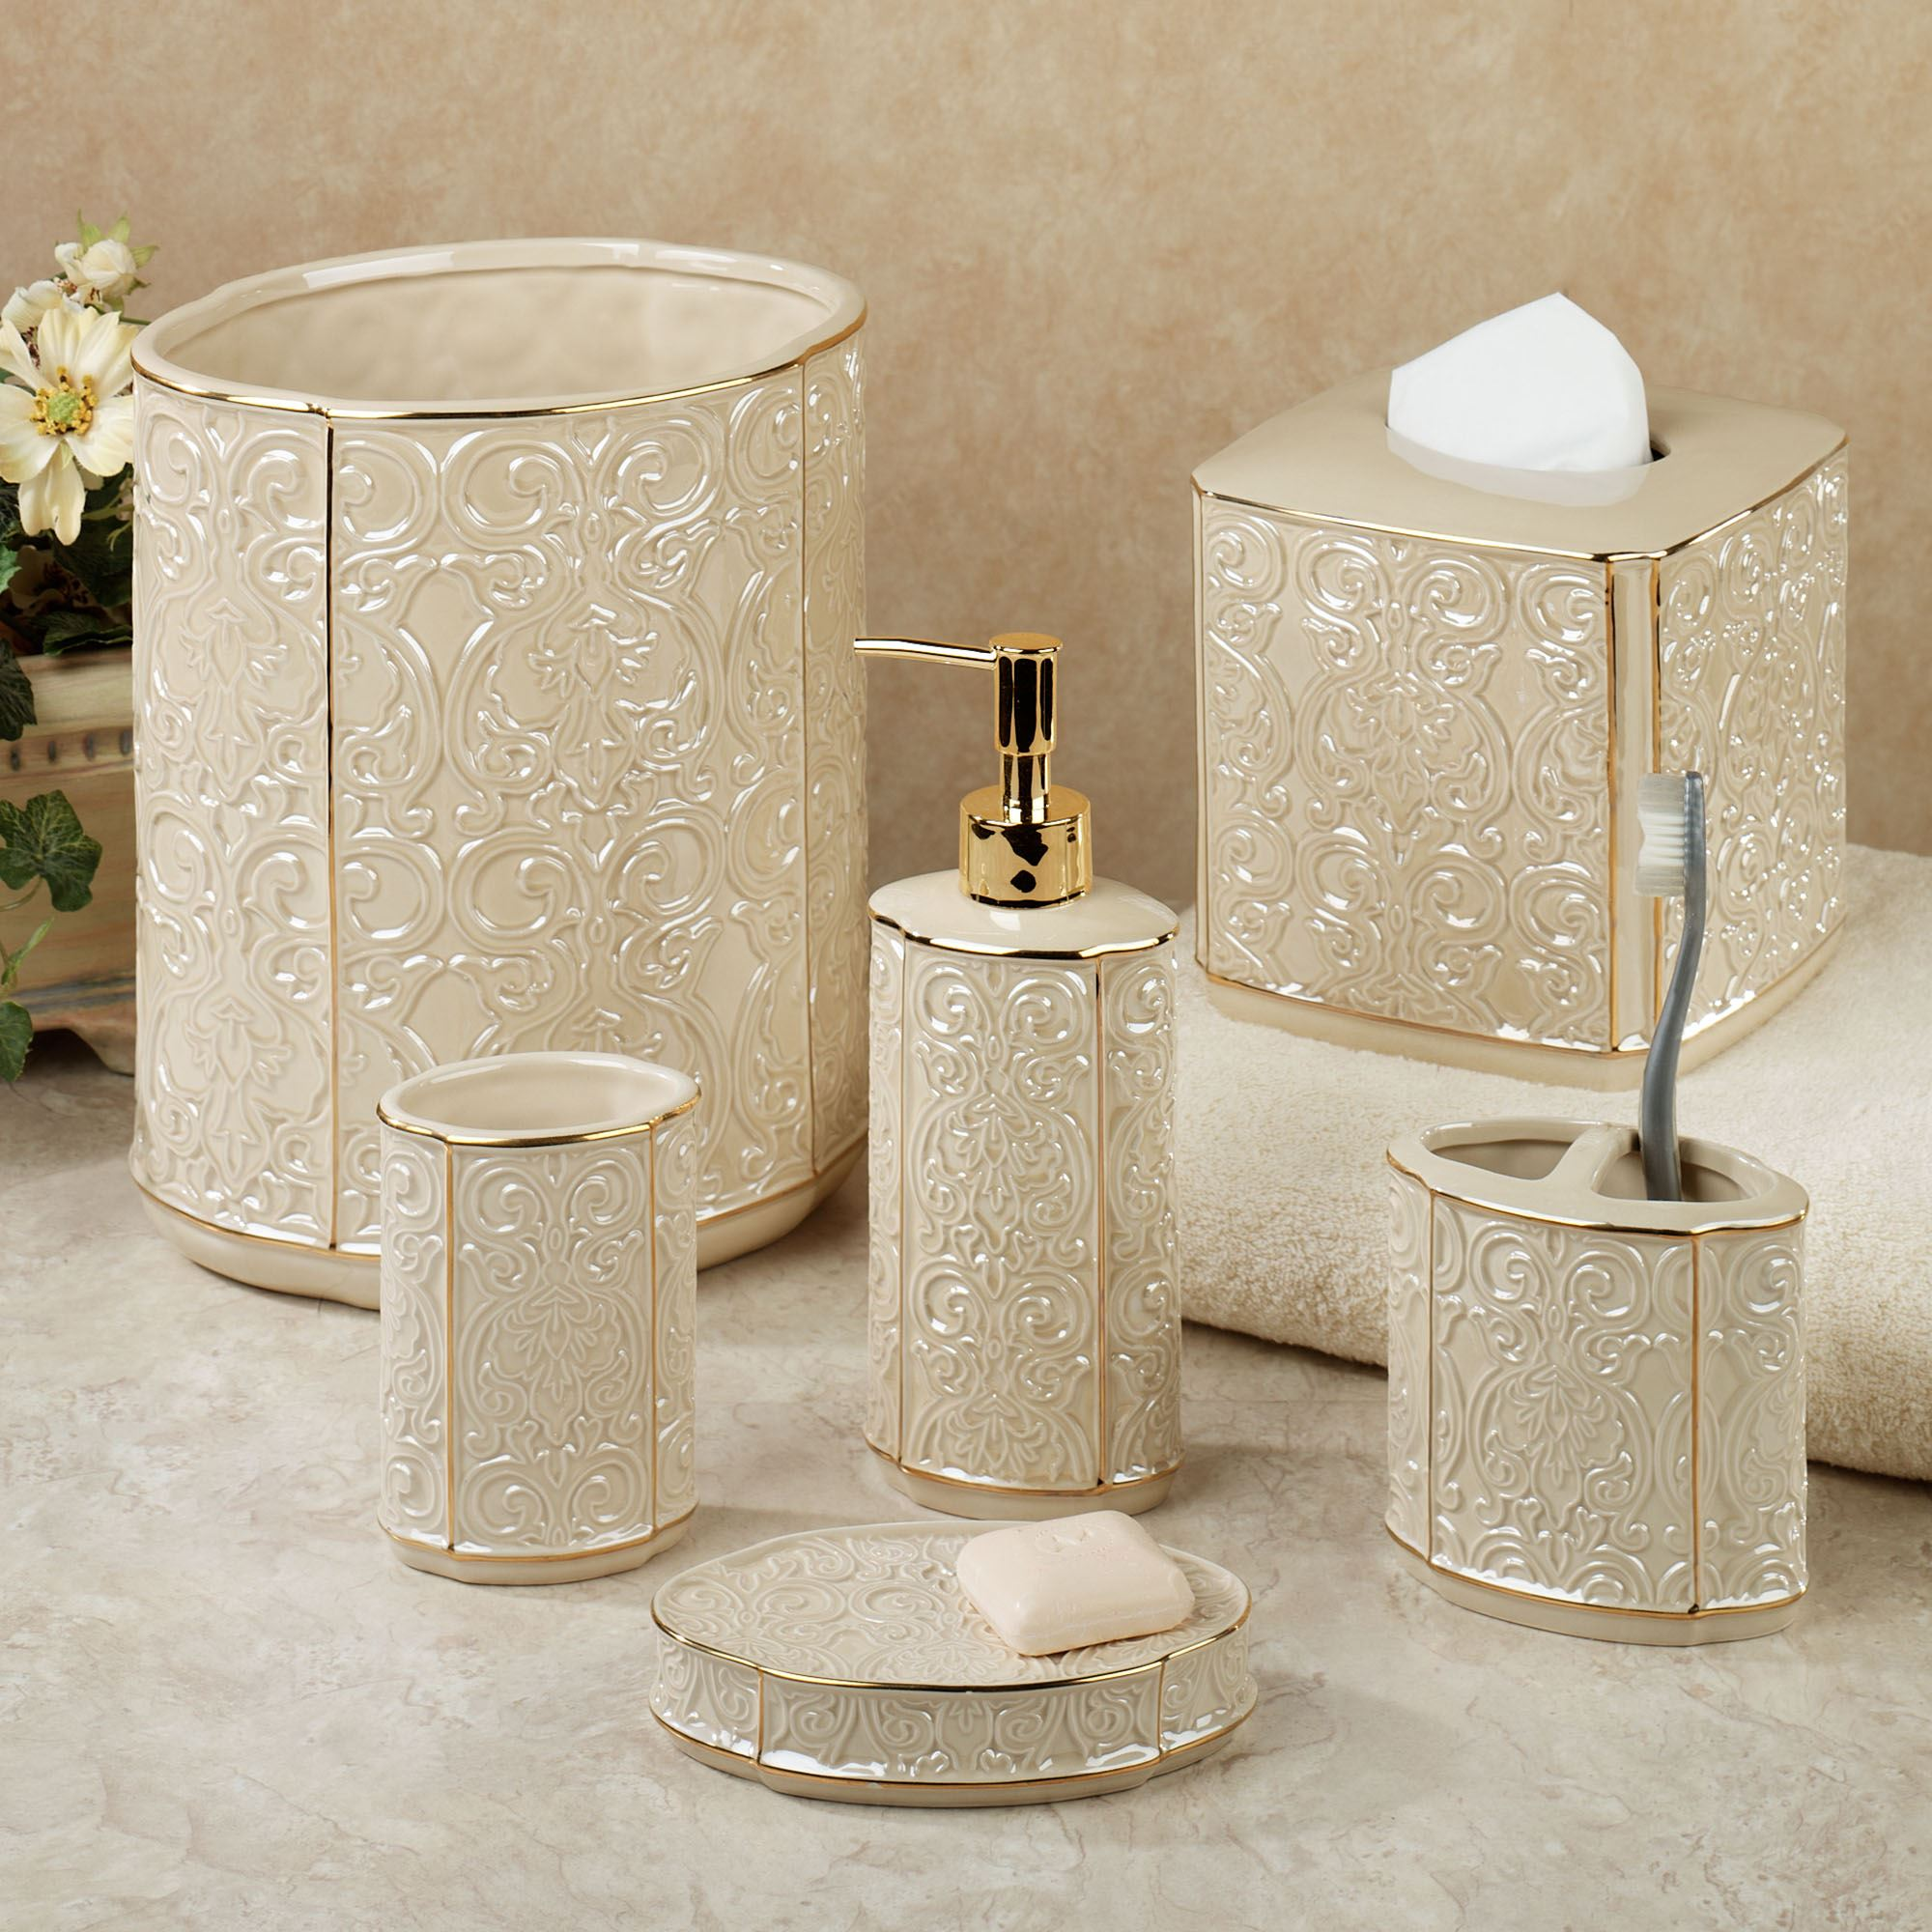 Furla cream damask ceramic bath accessories for Bath shower accessories